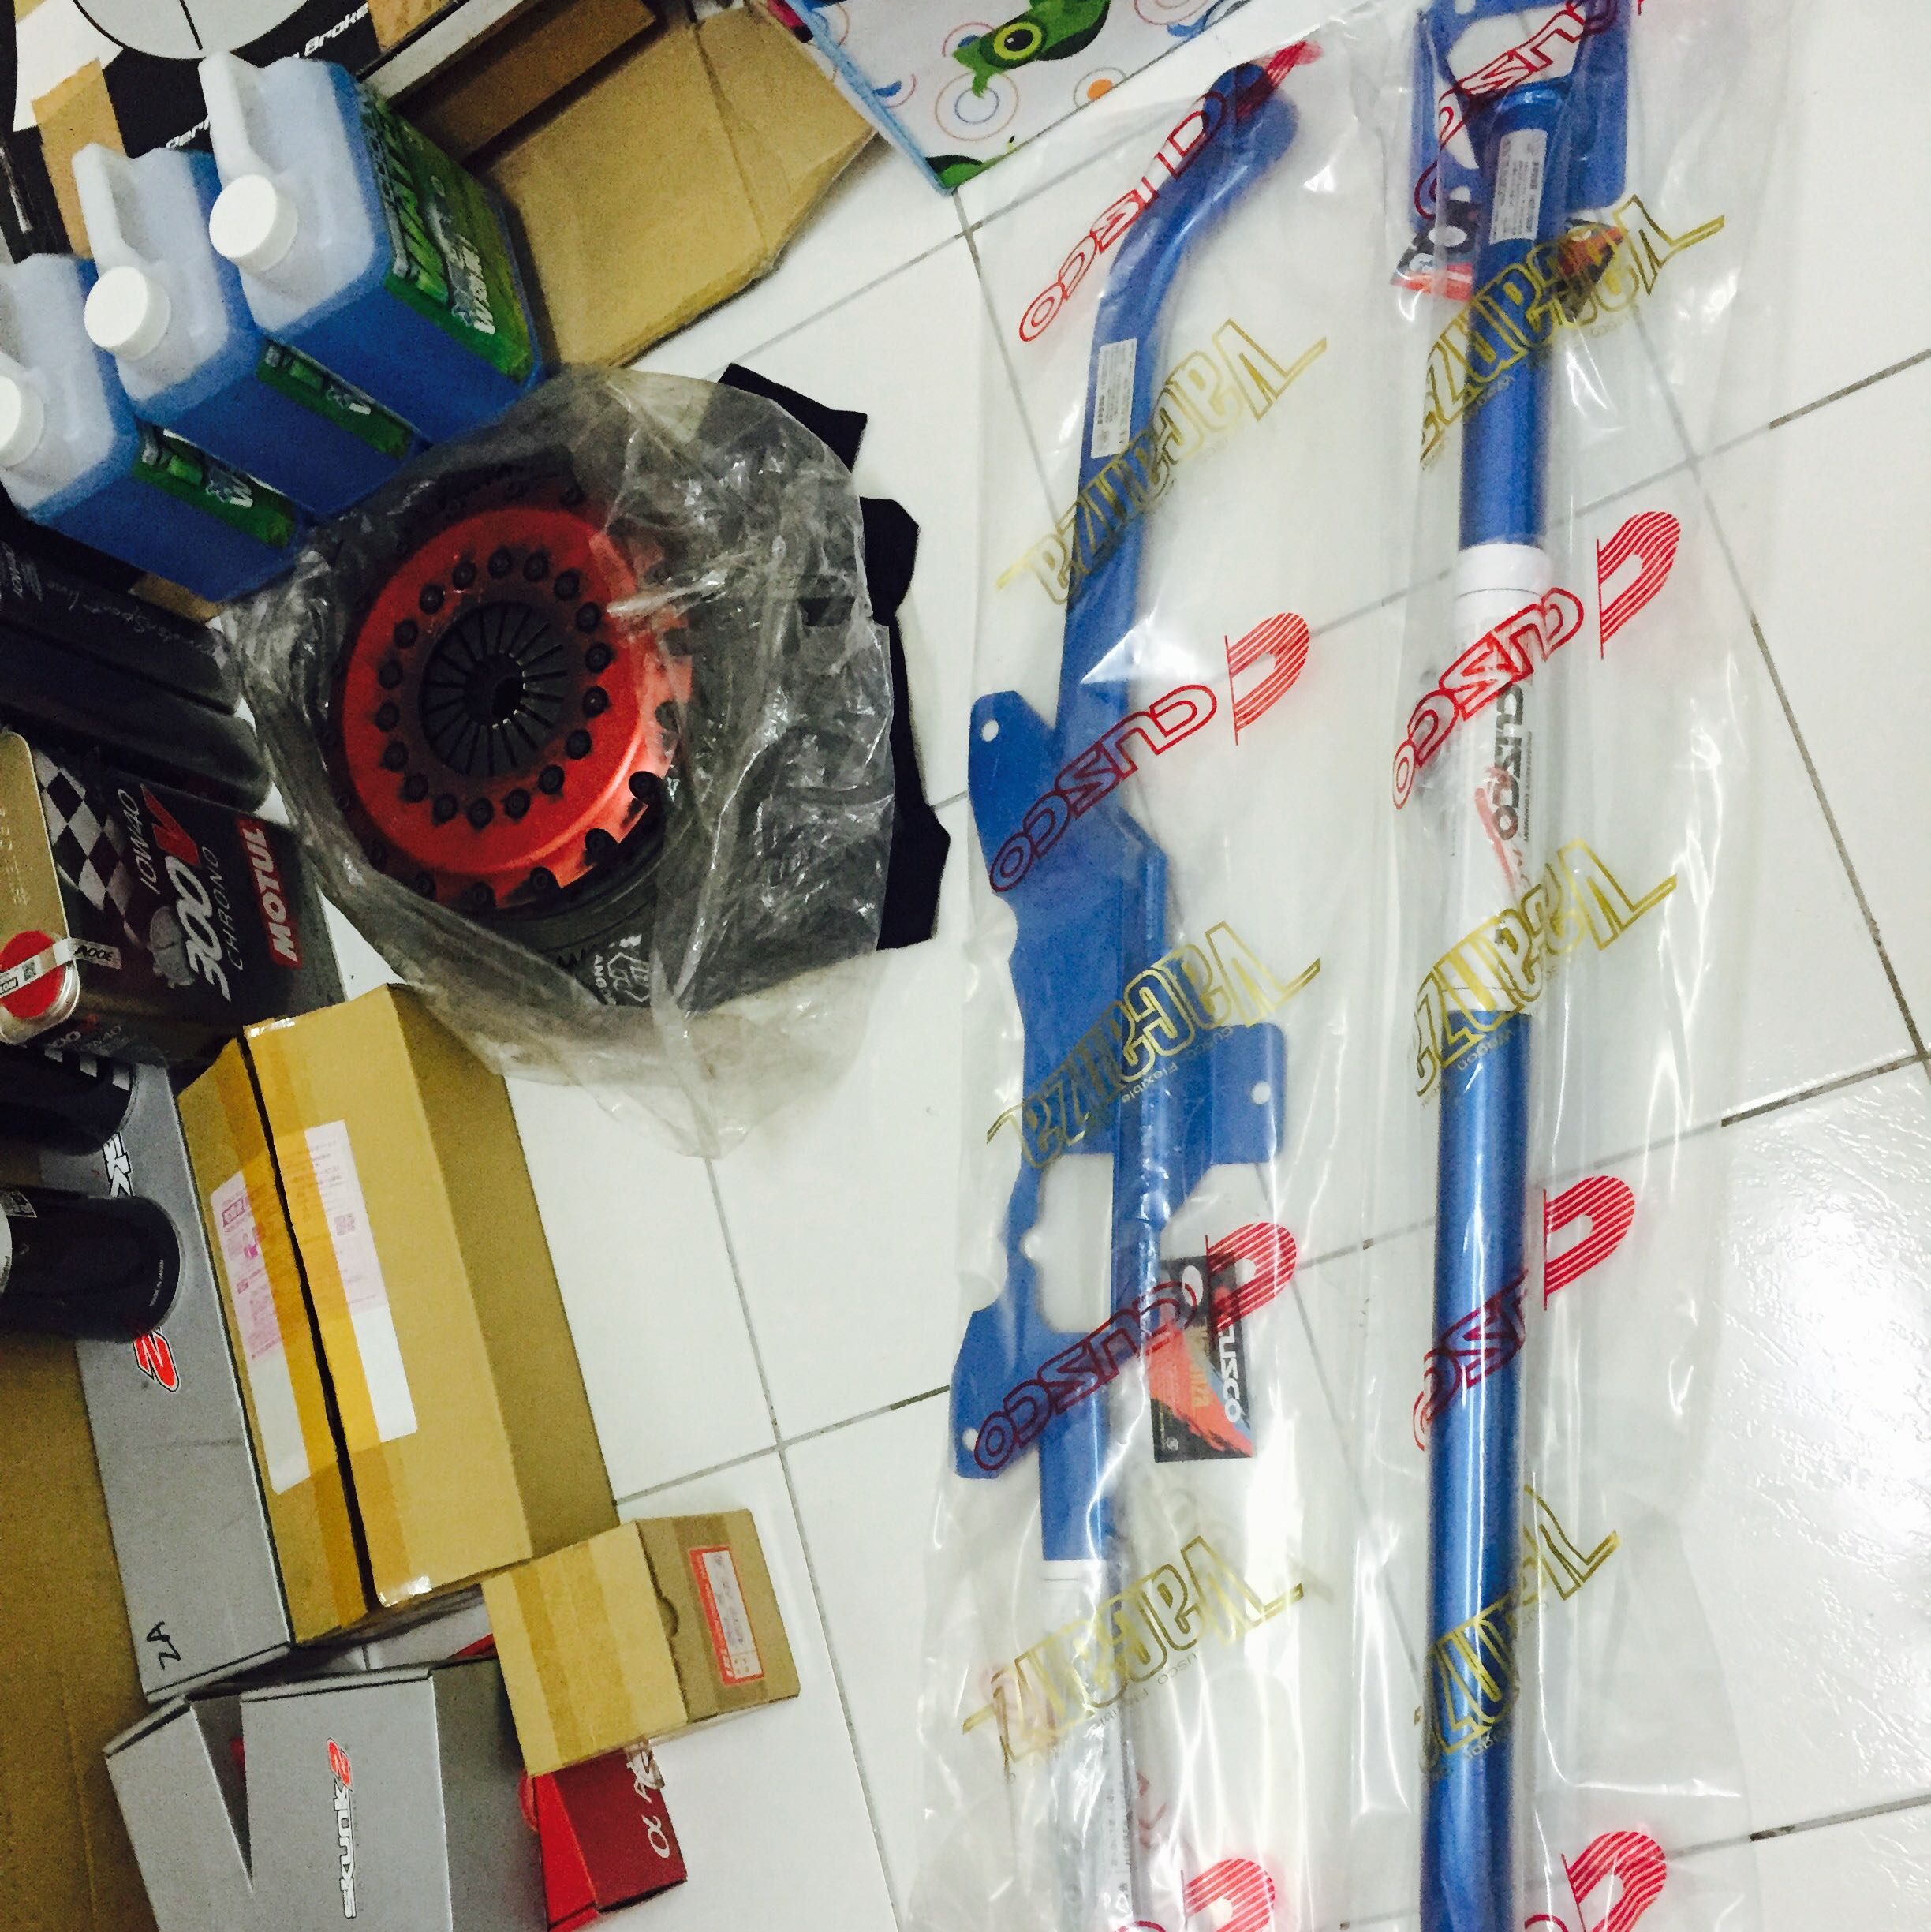 piston rod | Auto Accessories | Carousell Malaysia